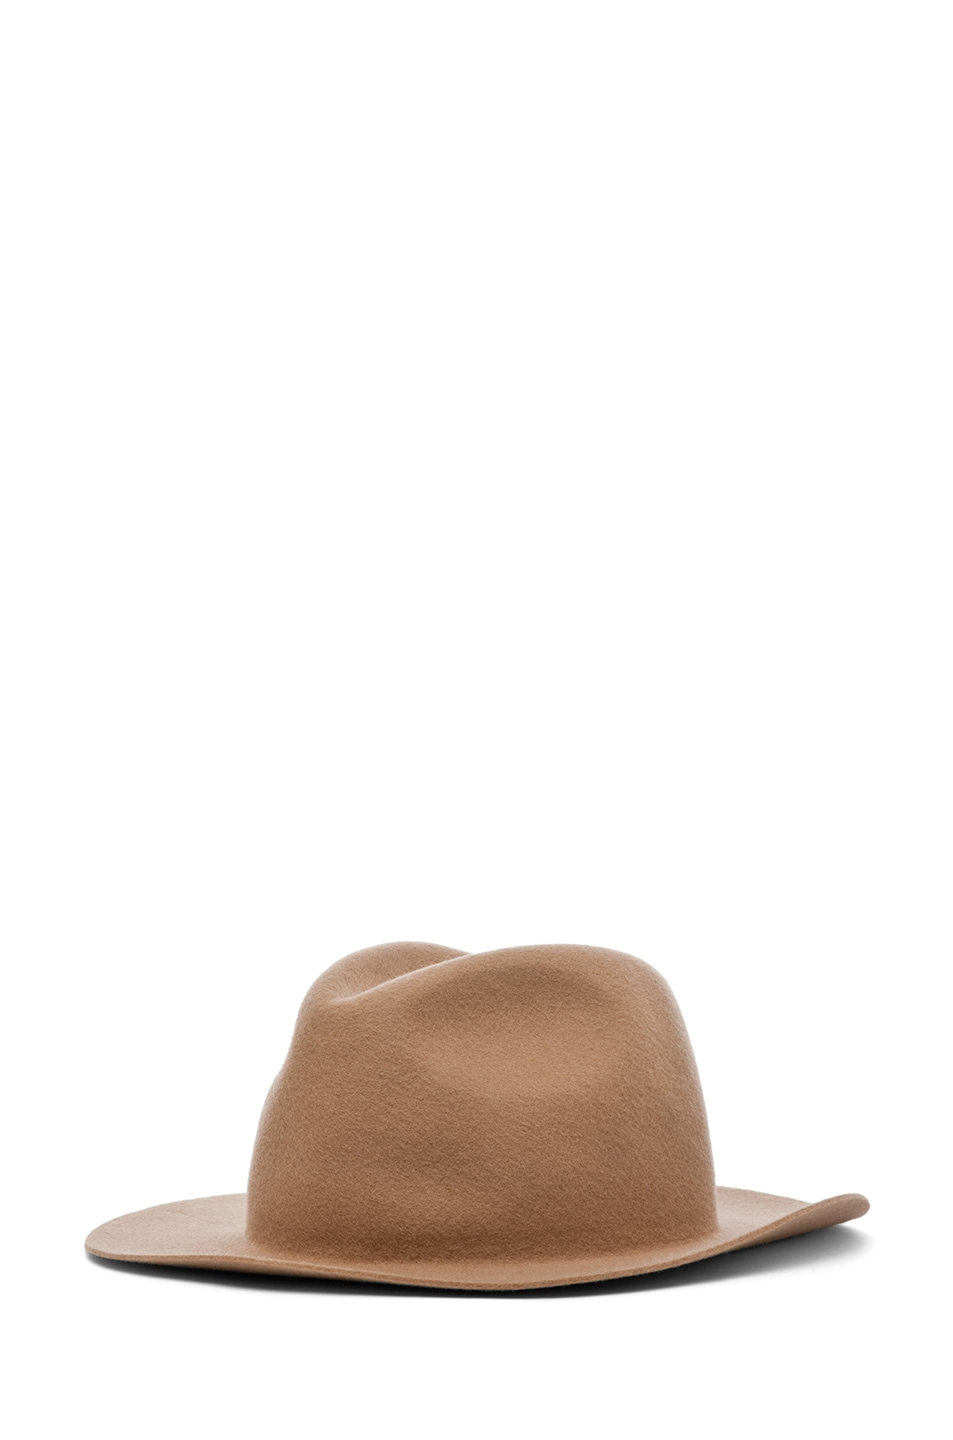 Image 2 of A.P.C. Chapeau Hat in Tan